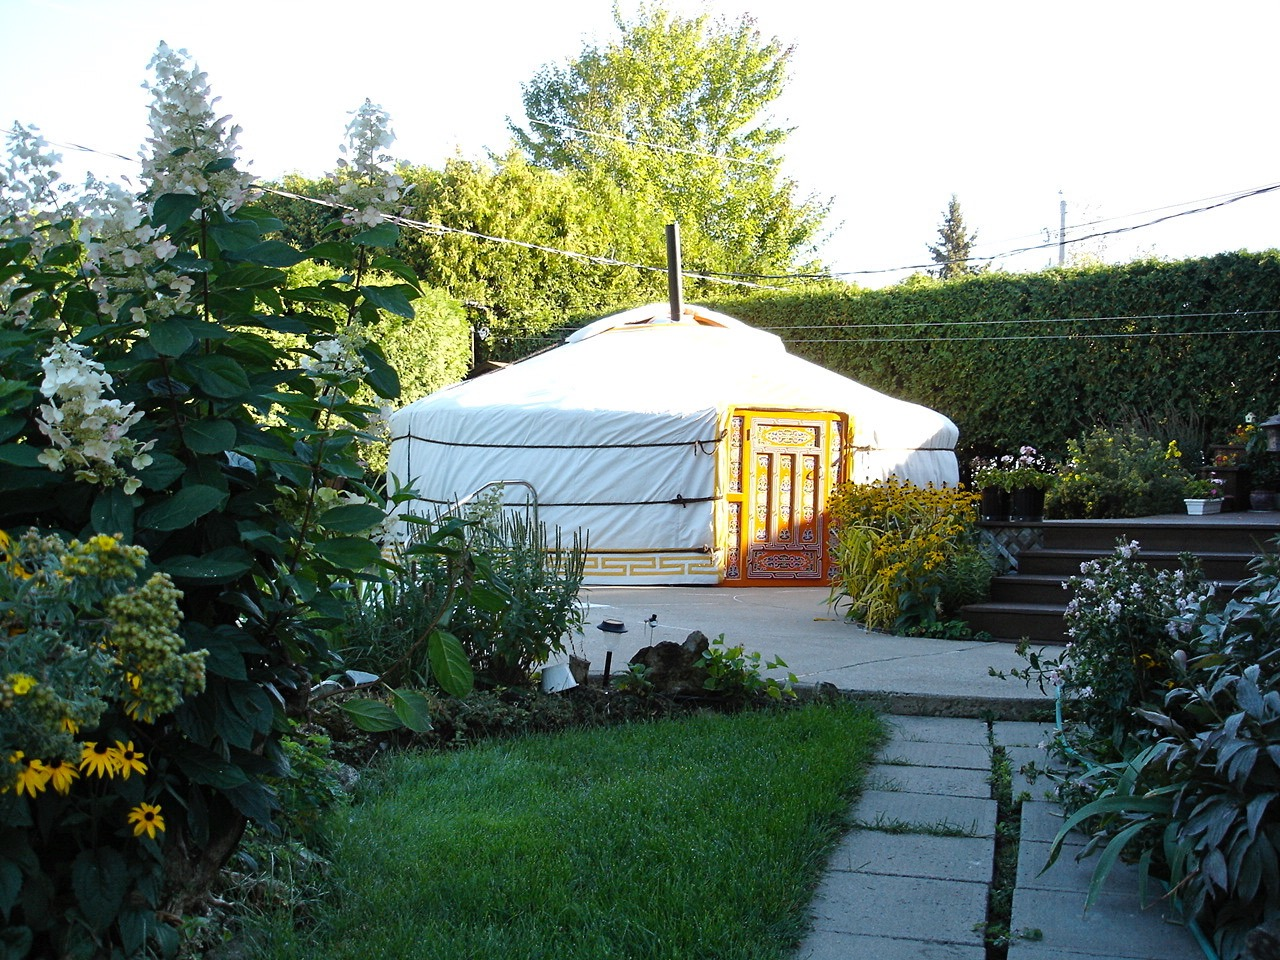 yurt in backyard